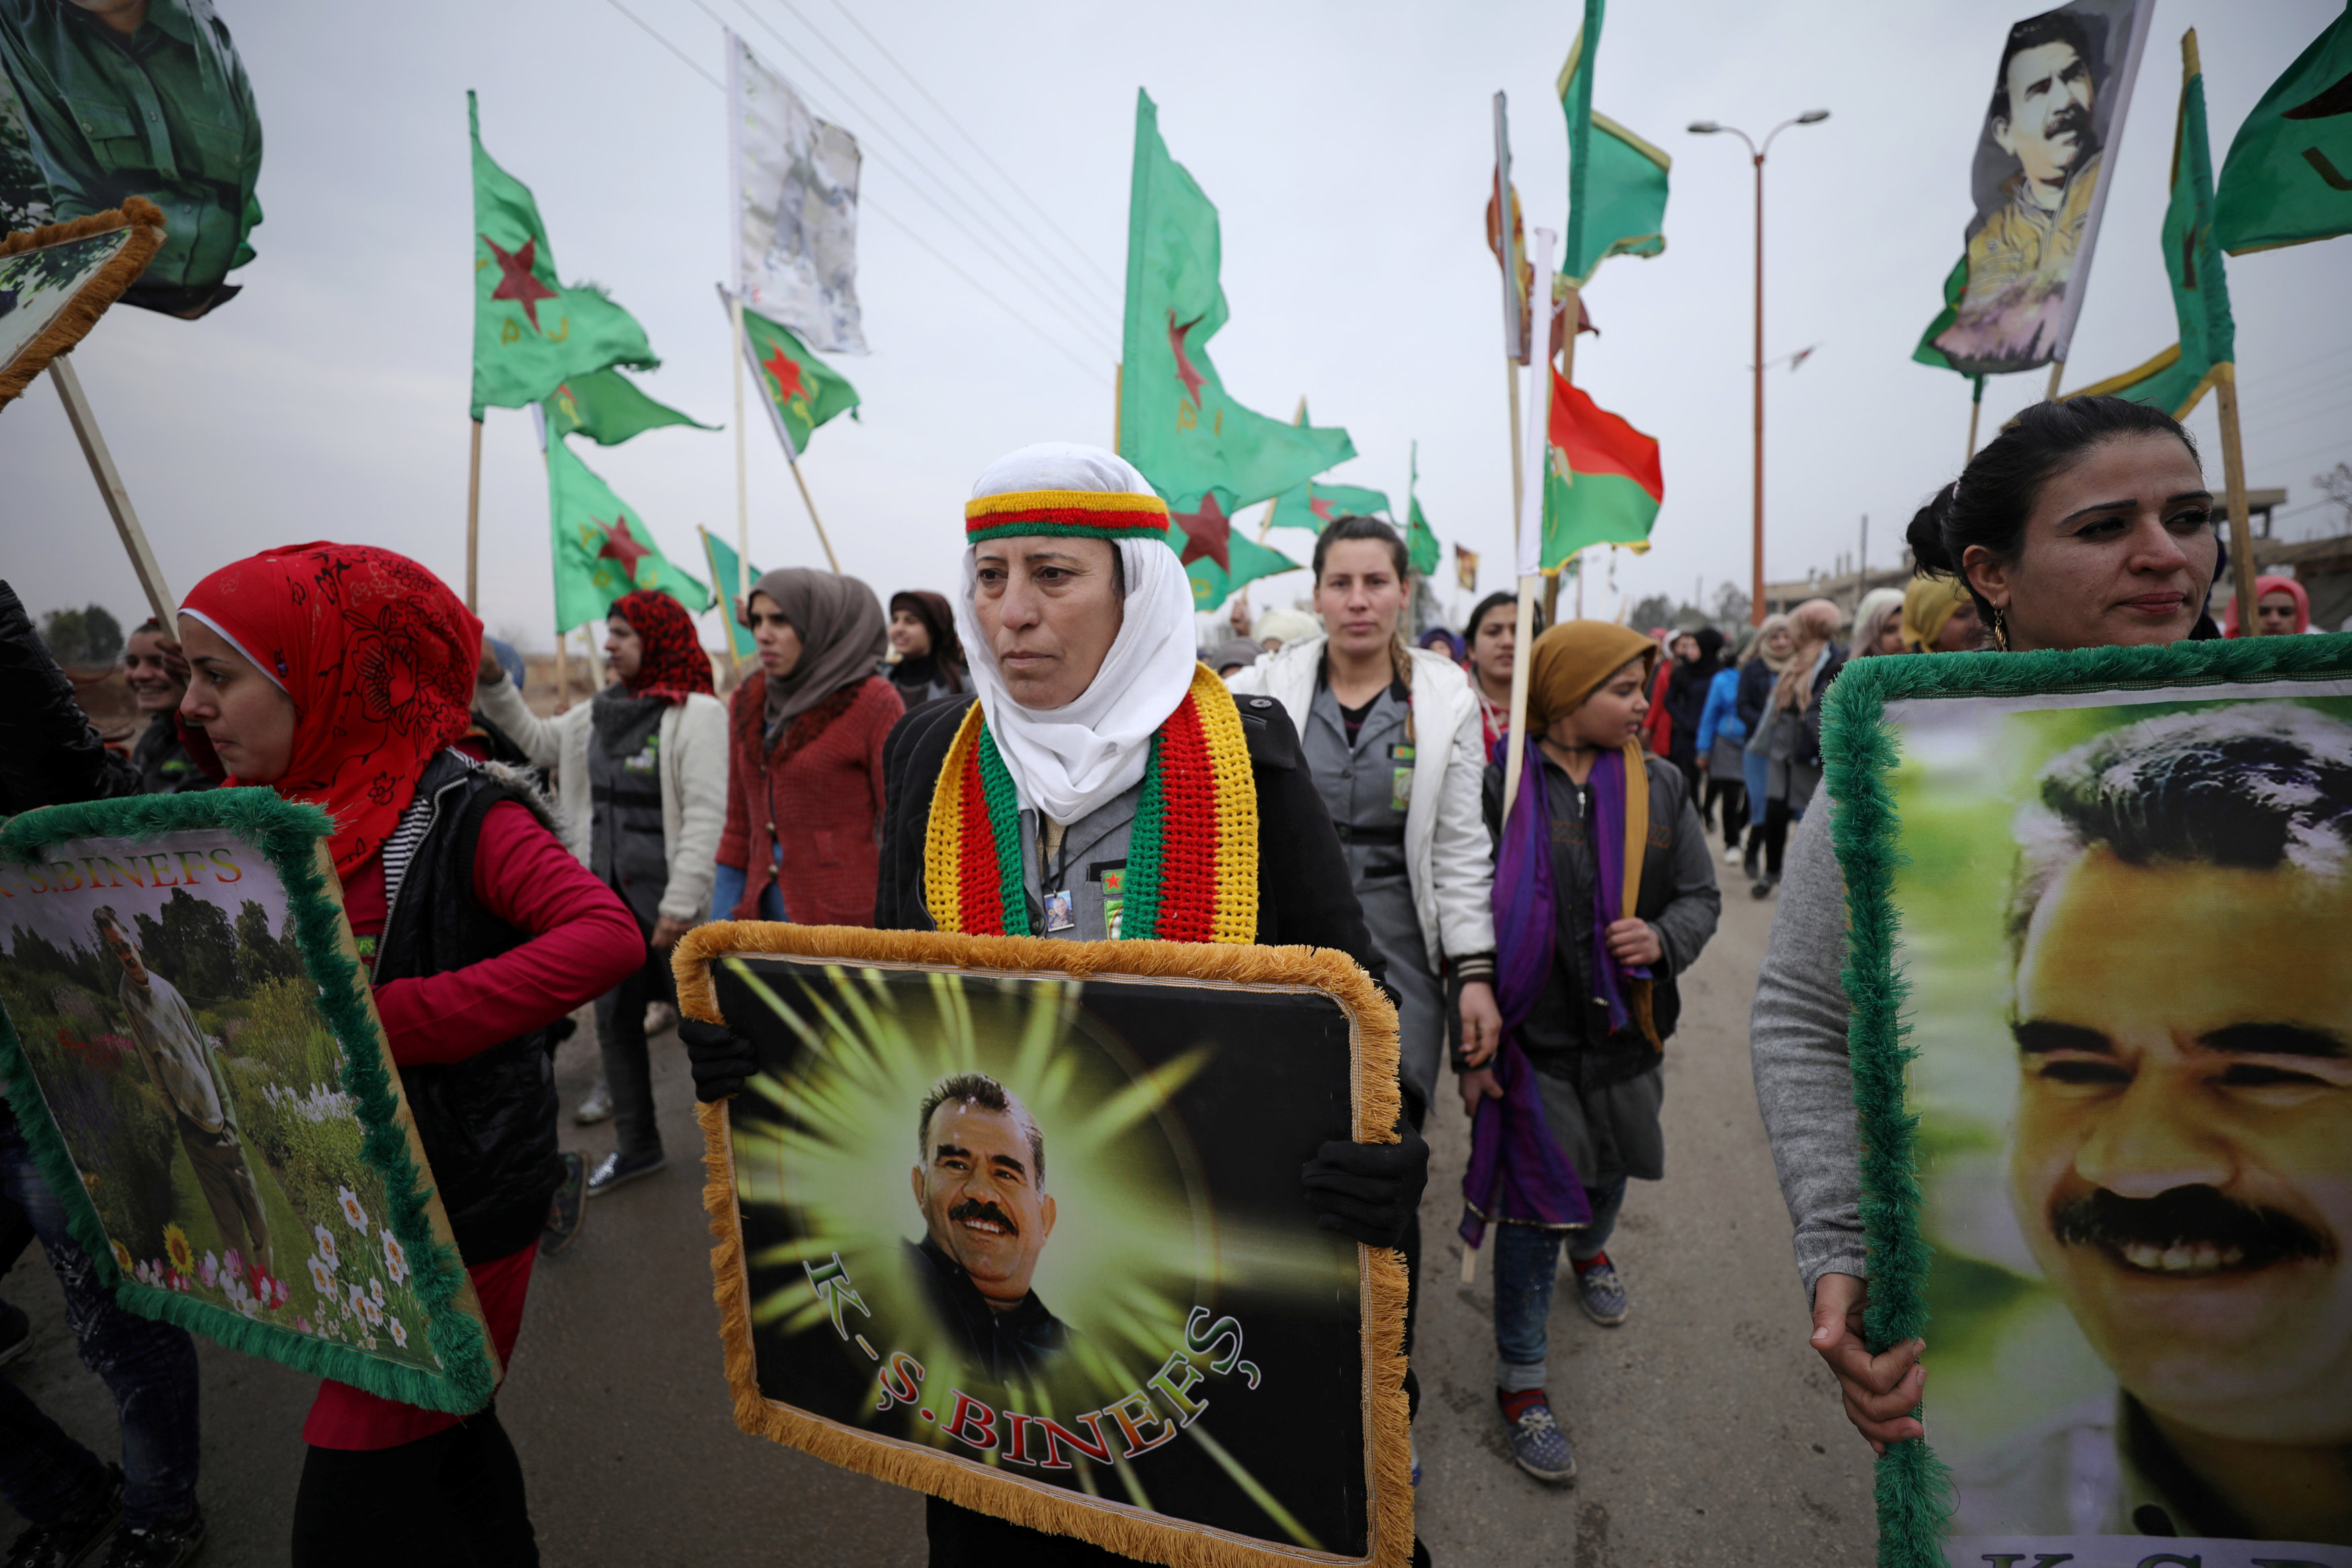 A woman holds a picture of Kurdish leader Abdullah Ocalan of the Kurdistan Workers Party (PKK) during a protest against Turkish attacks on Afrin, in Hasaka province, Syria, January 18, 2018.